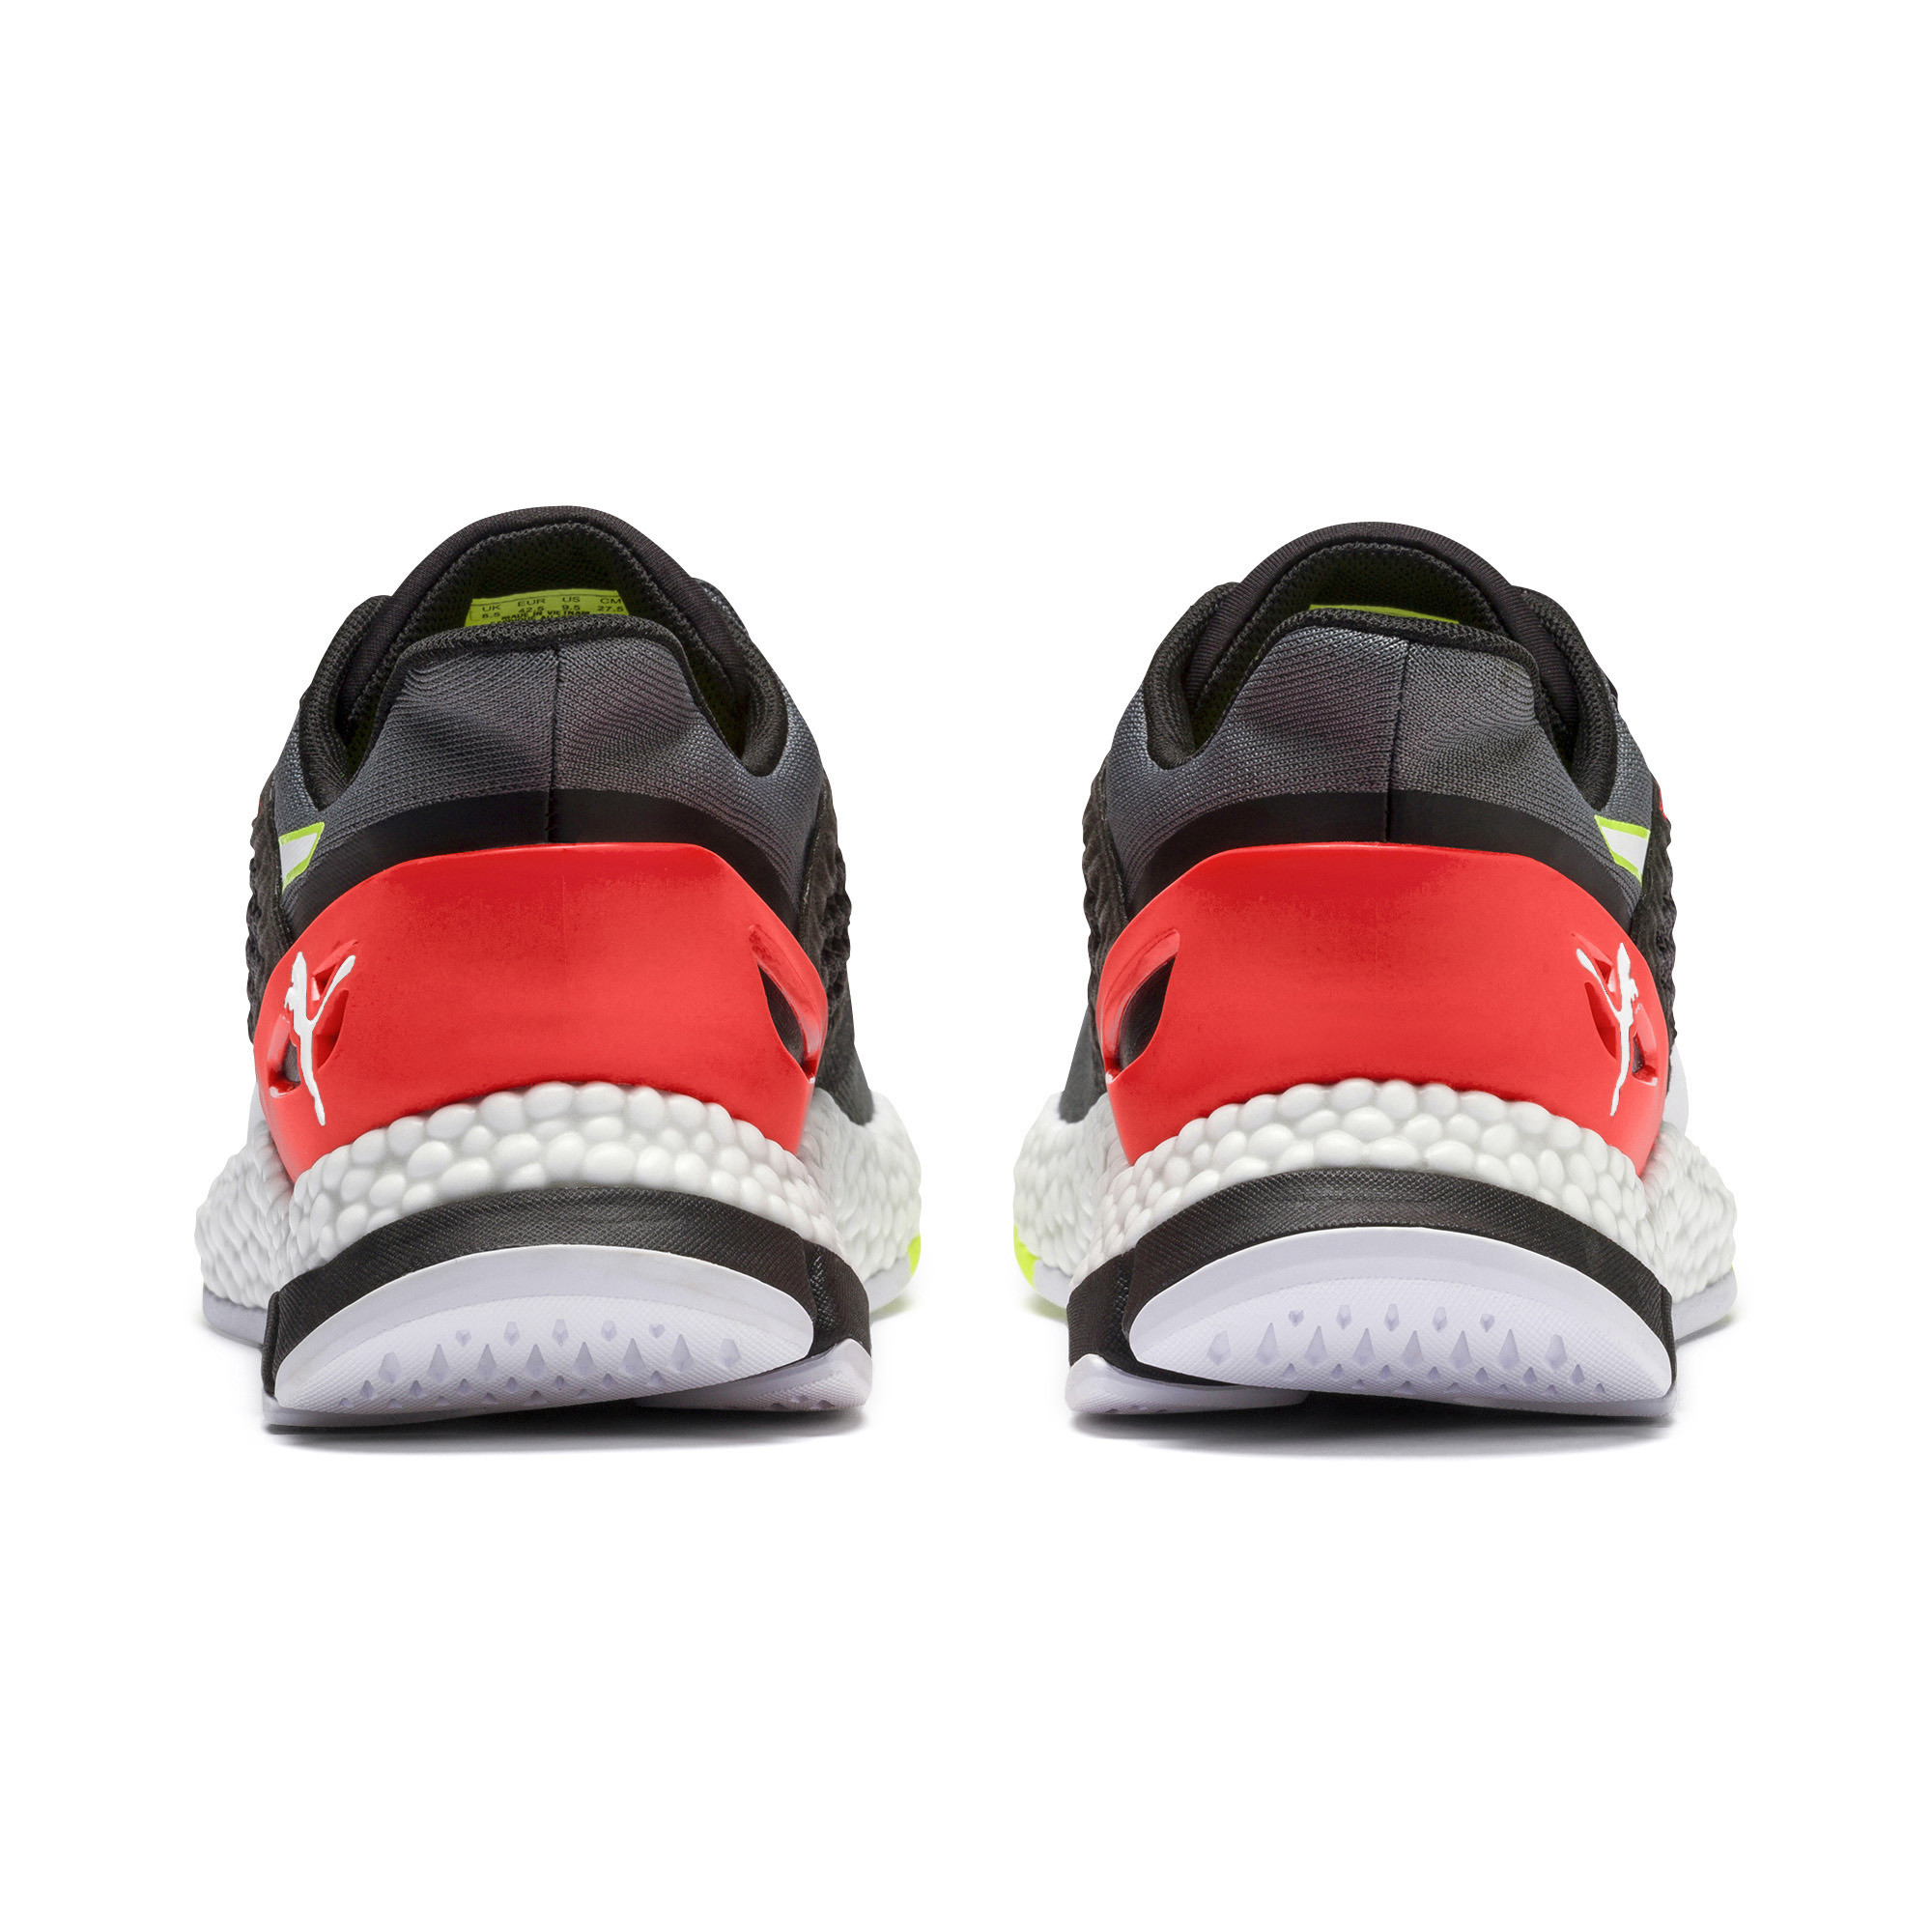 PUMA-HYBRID-Astro-Men-039-s-Running-Shoes-Men-Shoe-Running thumbnail 13